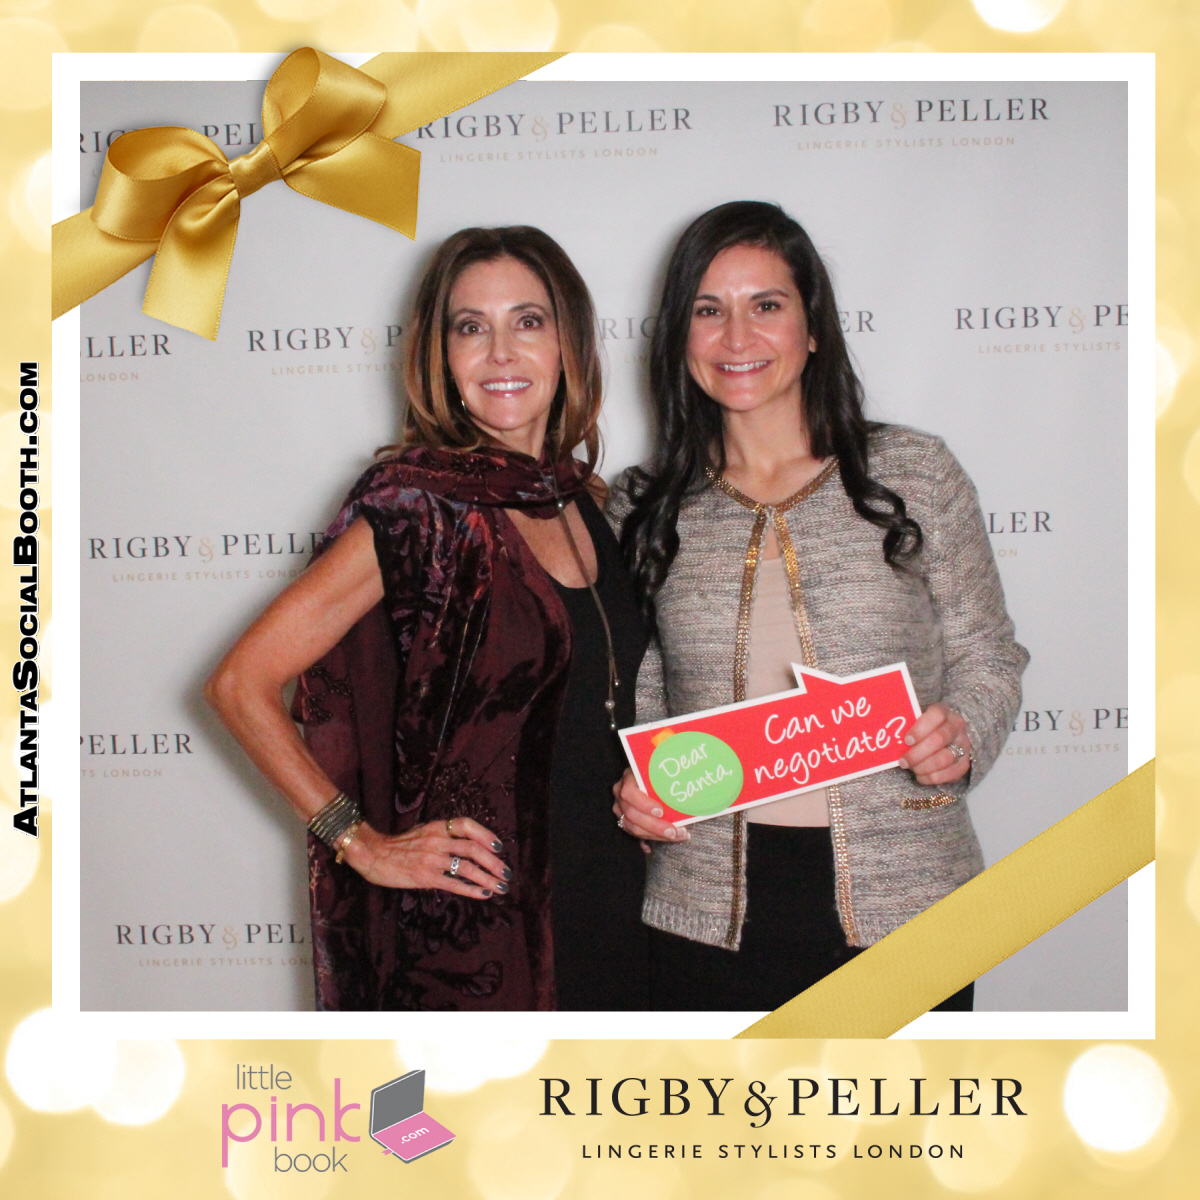 Rigby & Peller Holiday Party Social